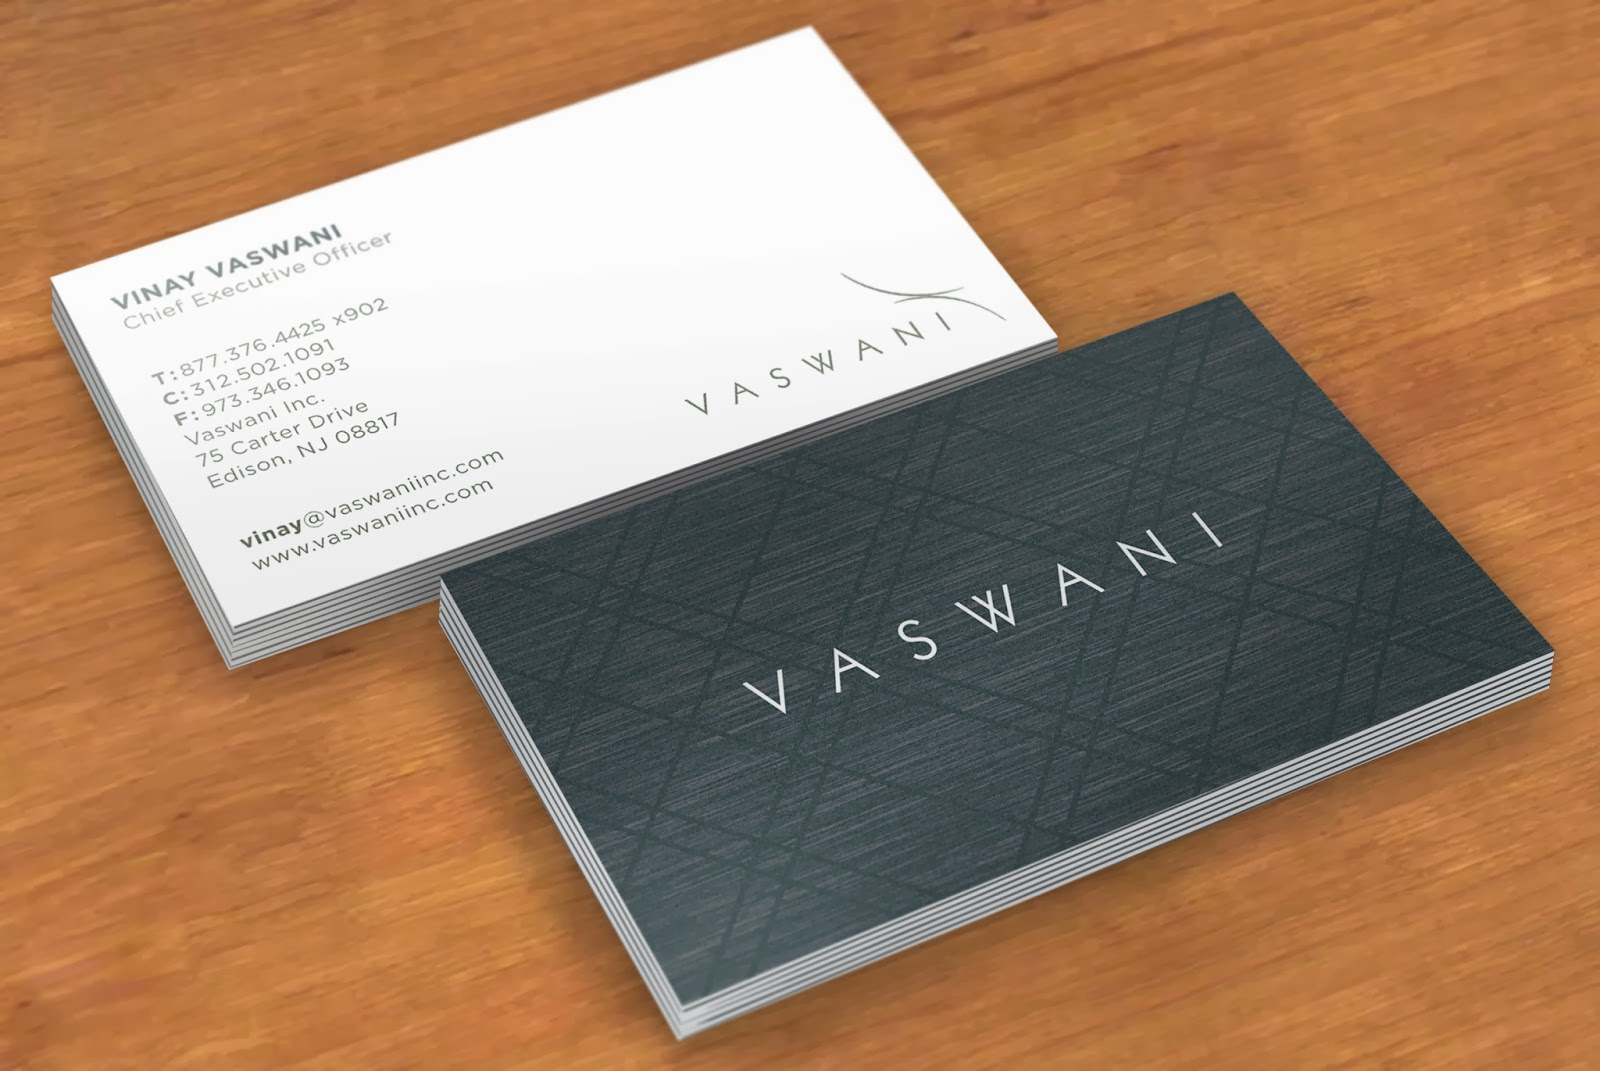 Custom Card Template buisness cards : All photos gallery: best business cards